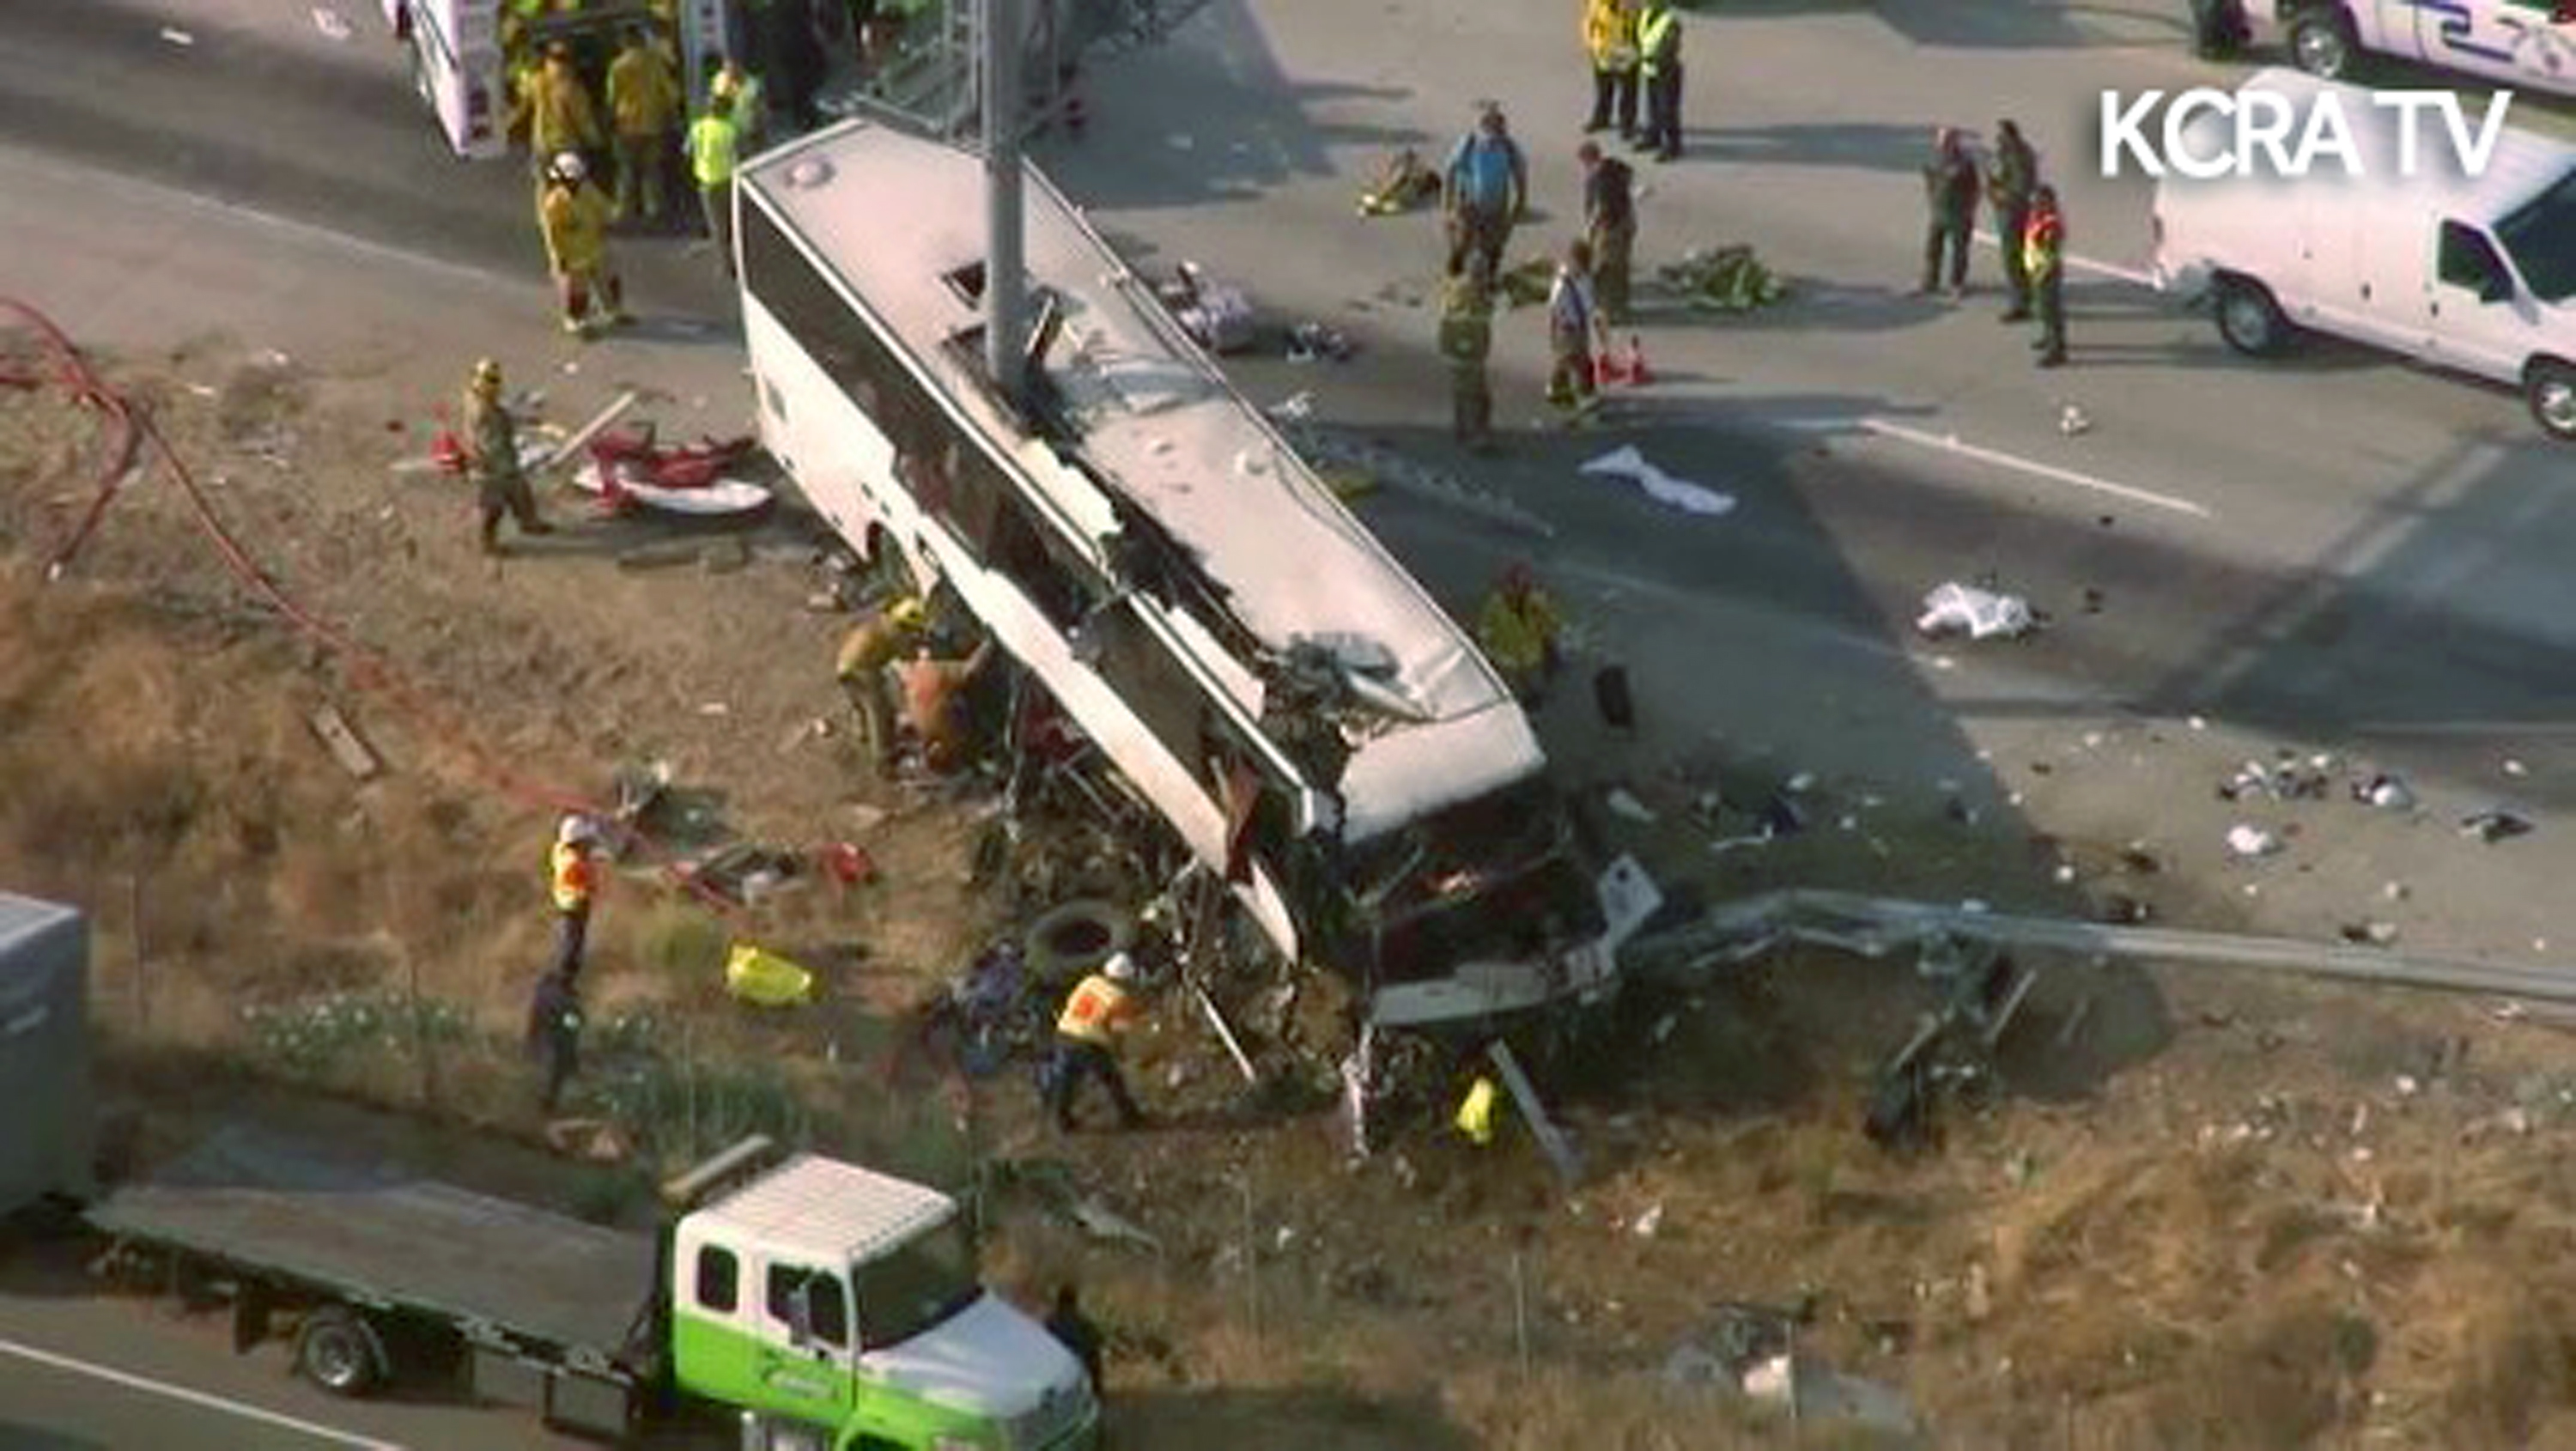 Highway pole rips through bus in California crash, killing 5 | The ...